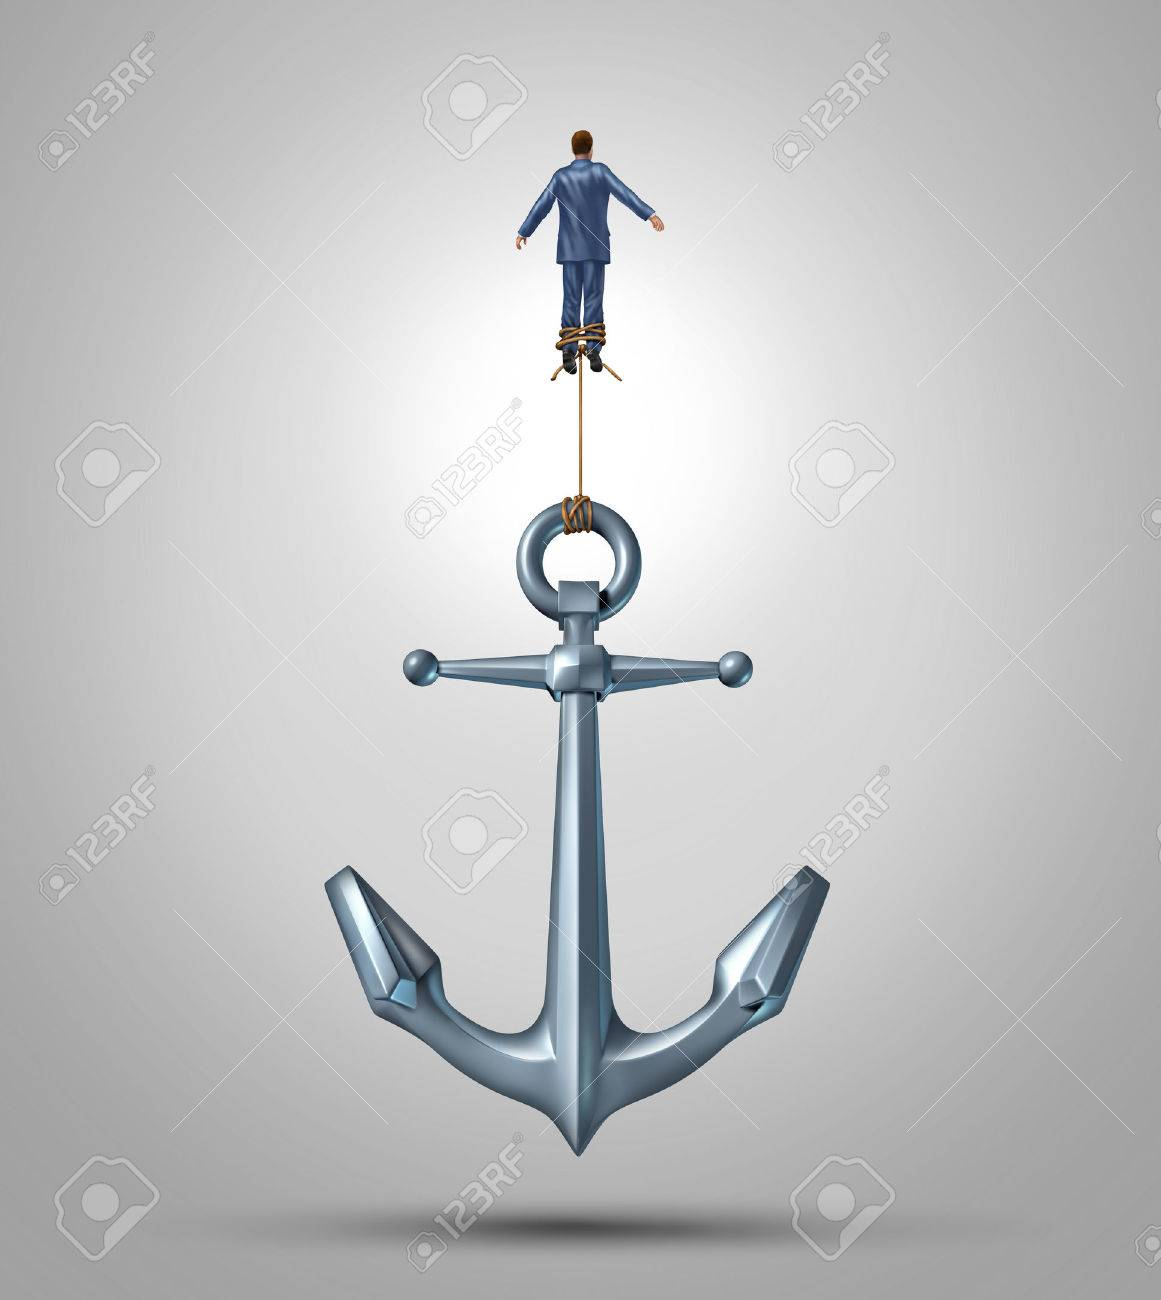 Overcoming limitations and adversity as a business concept of liberation confidence and courage to escape the obstacles of life as a businessman rising up lifting a heavy anchor achieving success with the power of belief Stock Photo - 22215819